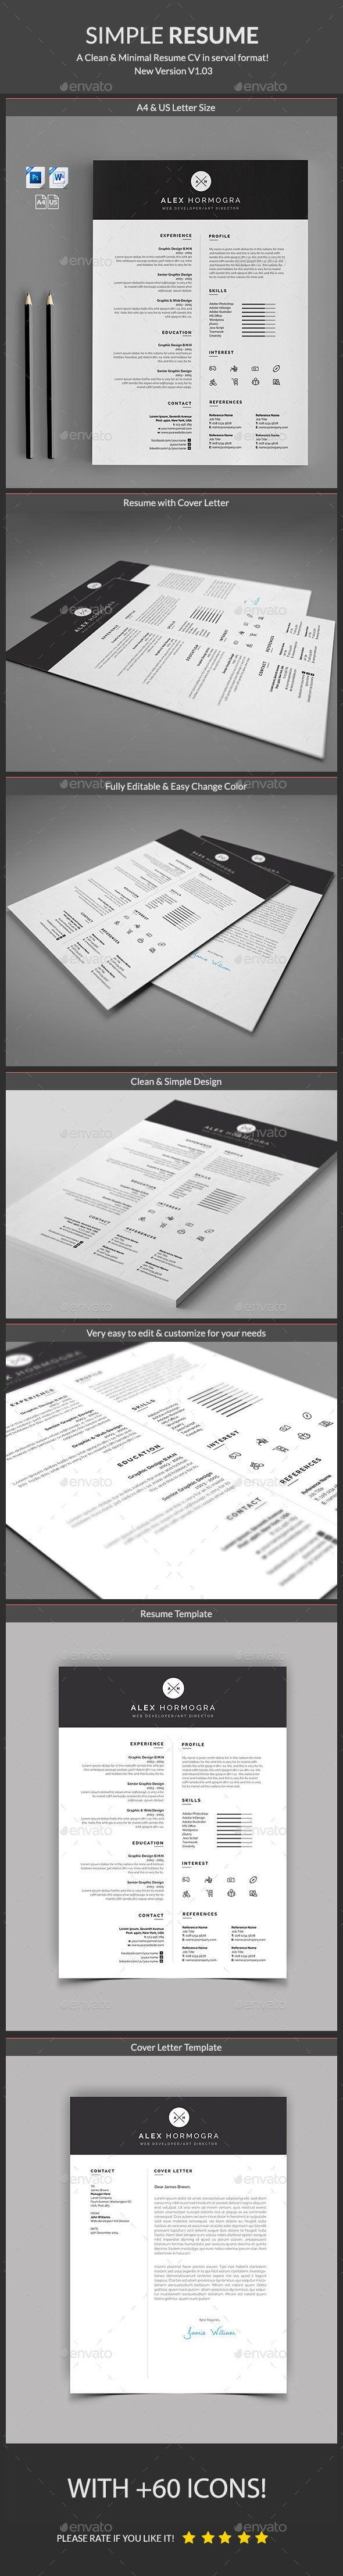 Resume Template PSD, MS Word. Download here: https://graphicriver ...